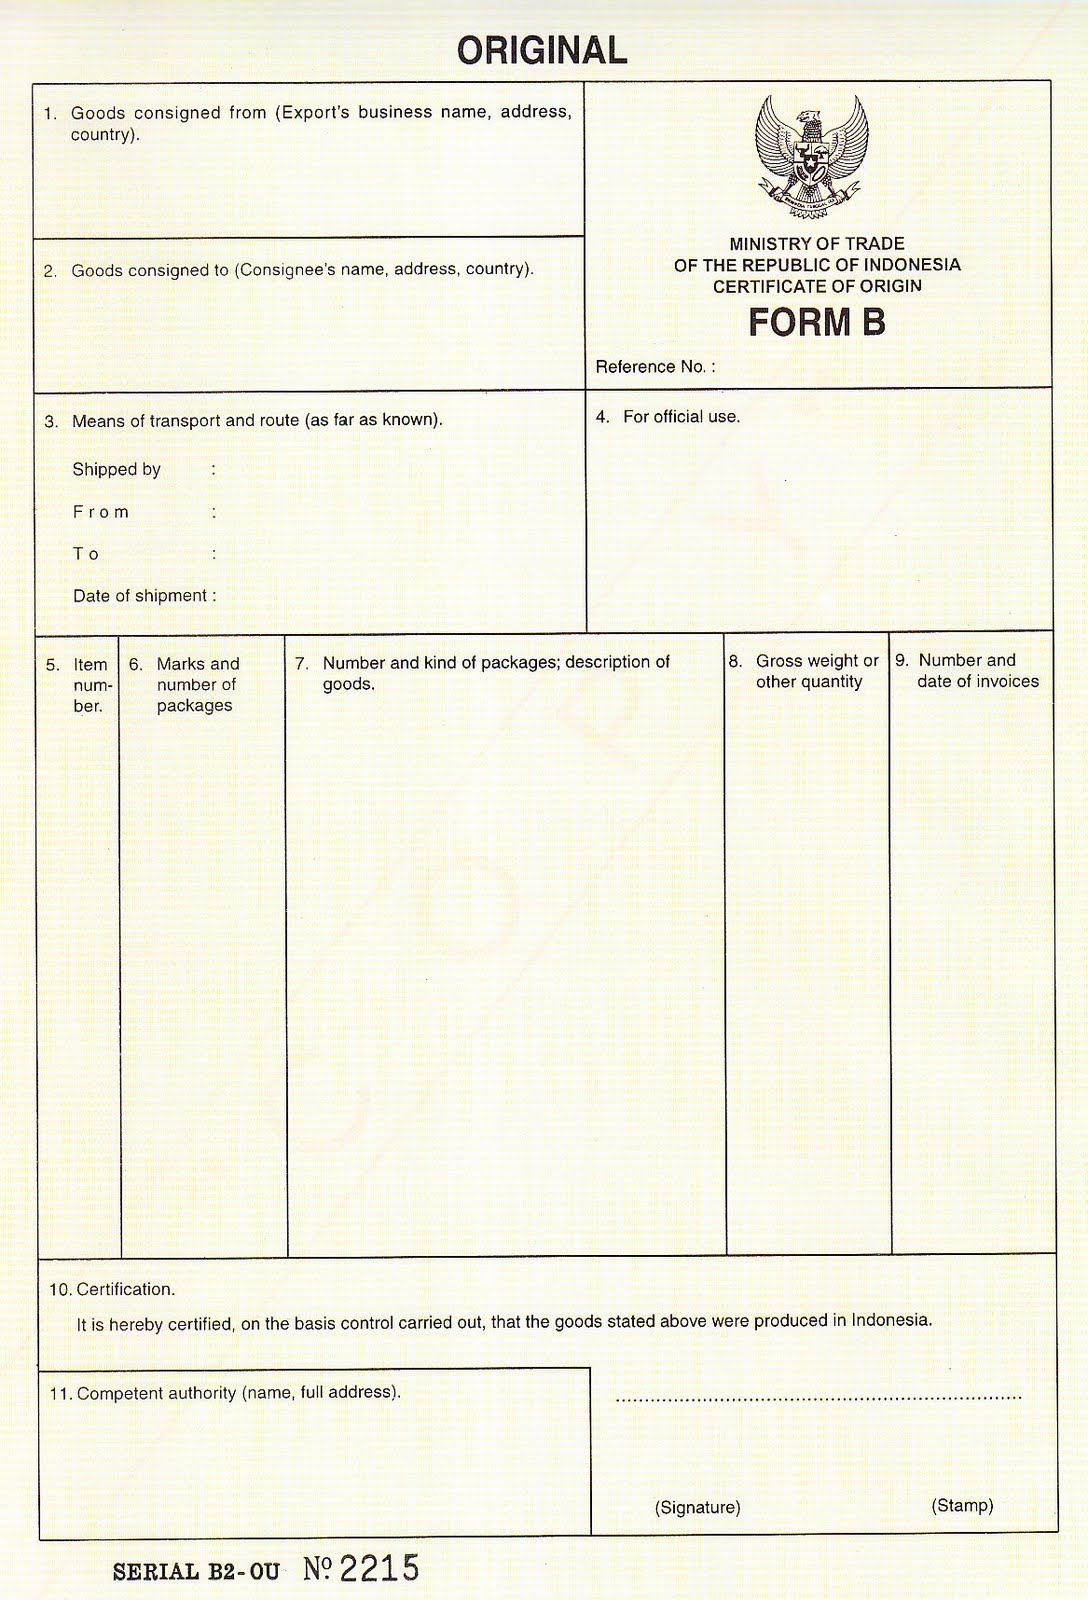 Certificate of origin CERTIFICATE OF ORIGIN FORM B – Certificate of Origin Forms